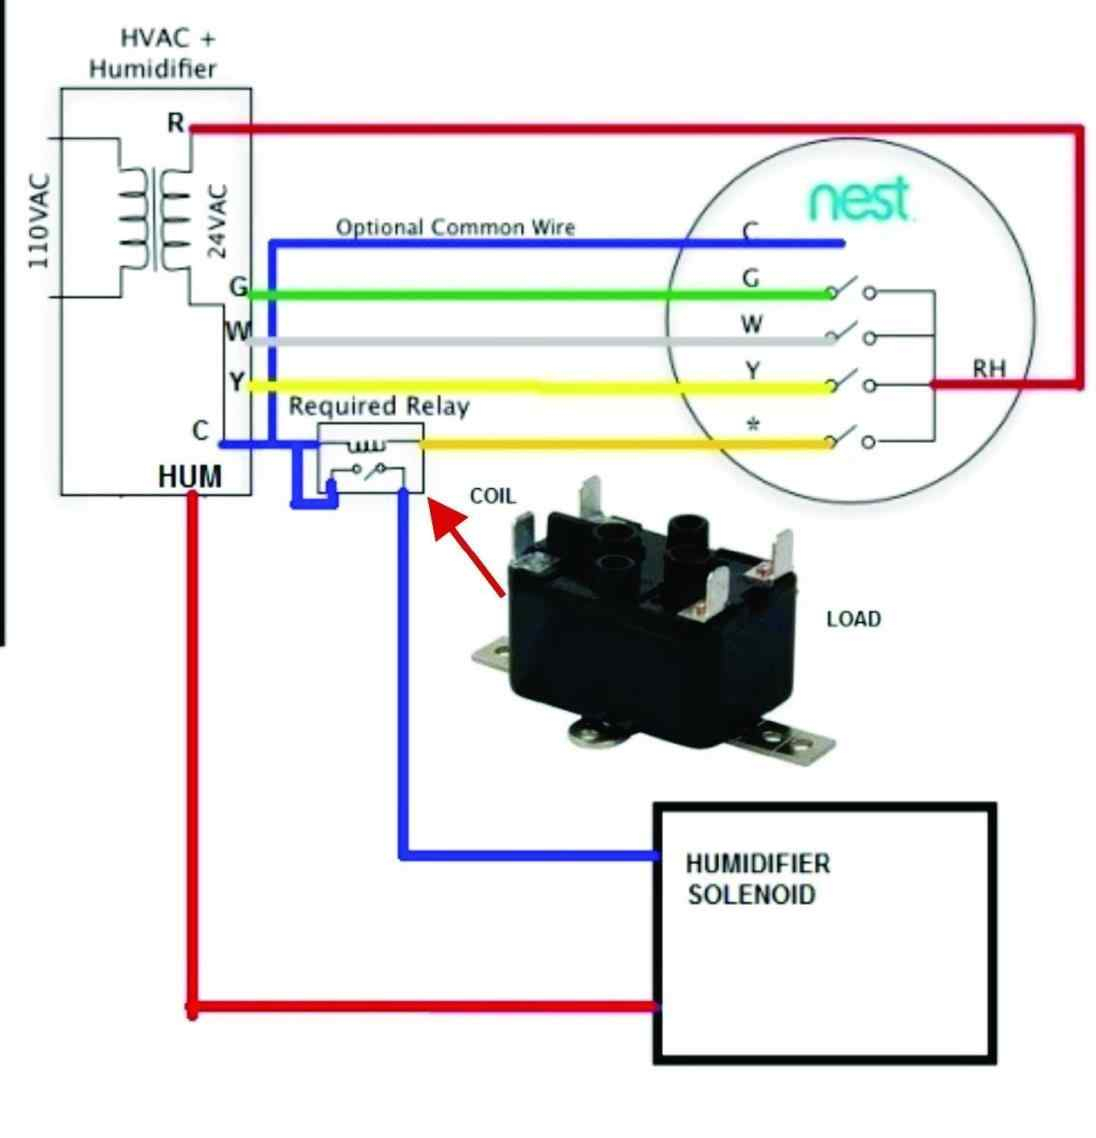 hight resolution of attic fan wire thermostat wiring diagram golkitcom remarkable pertaining to measurements 1096 x 1138